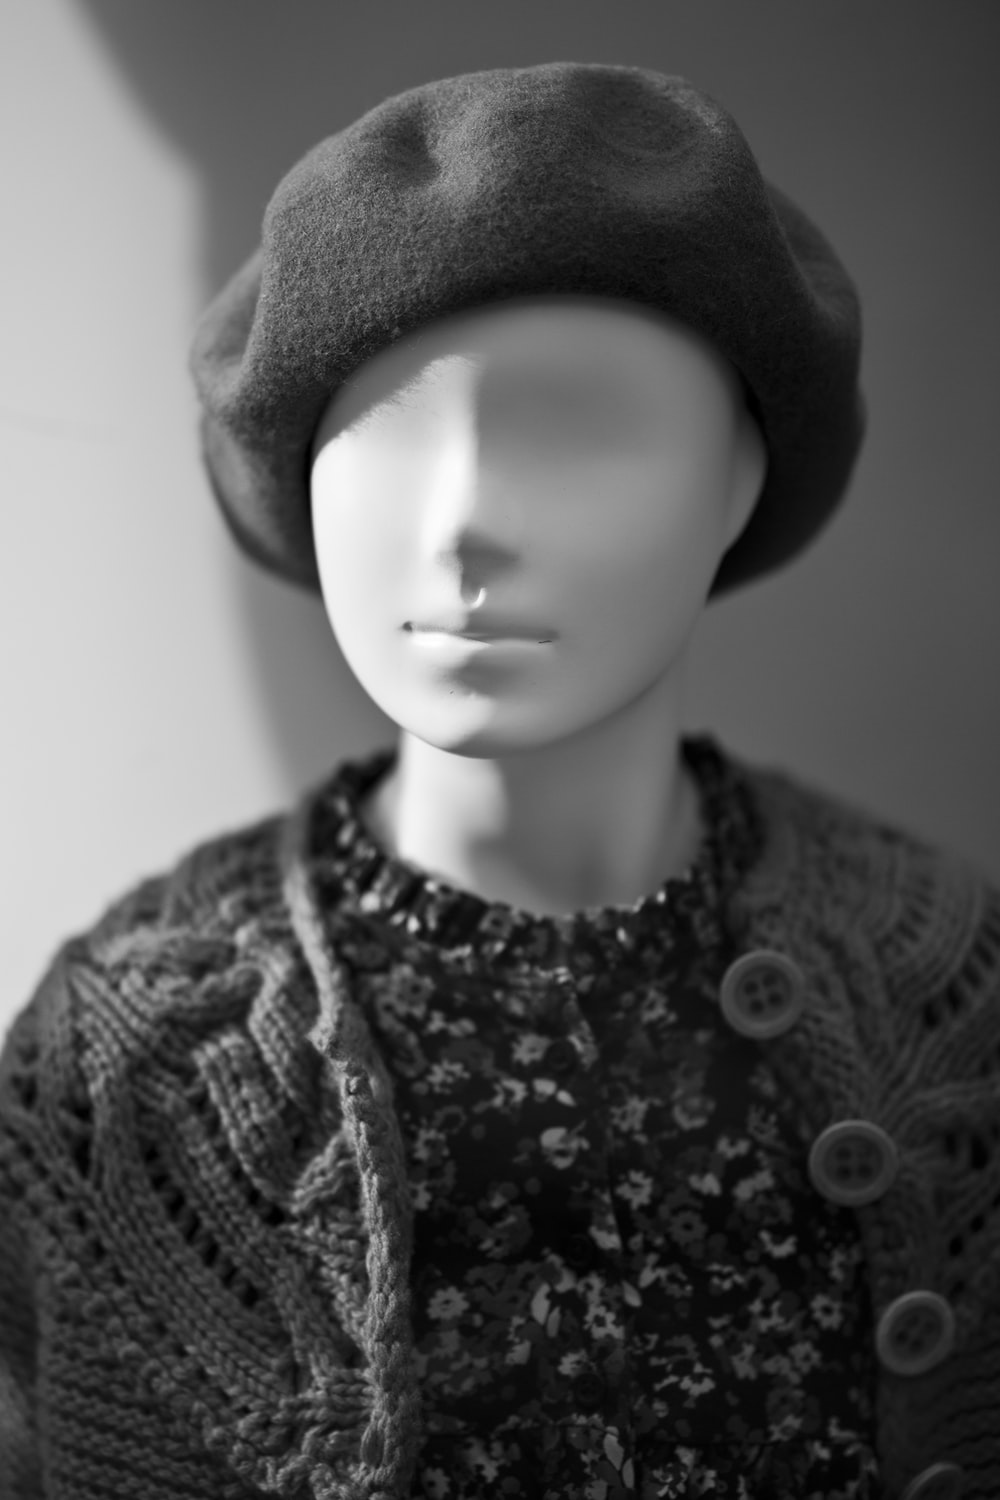 grayscale photo of woman wearing knit cap and knit shirt